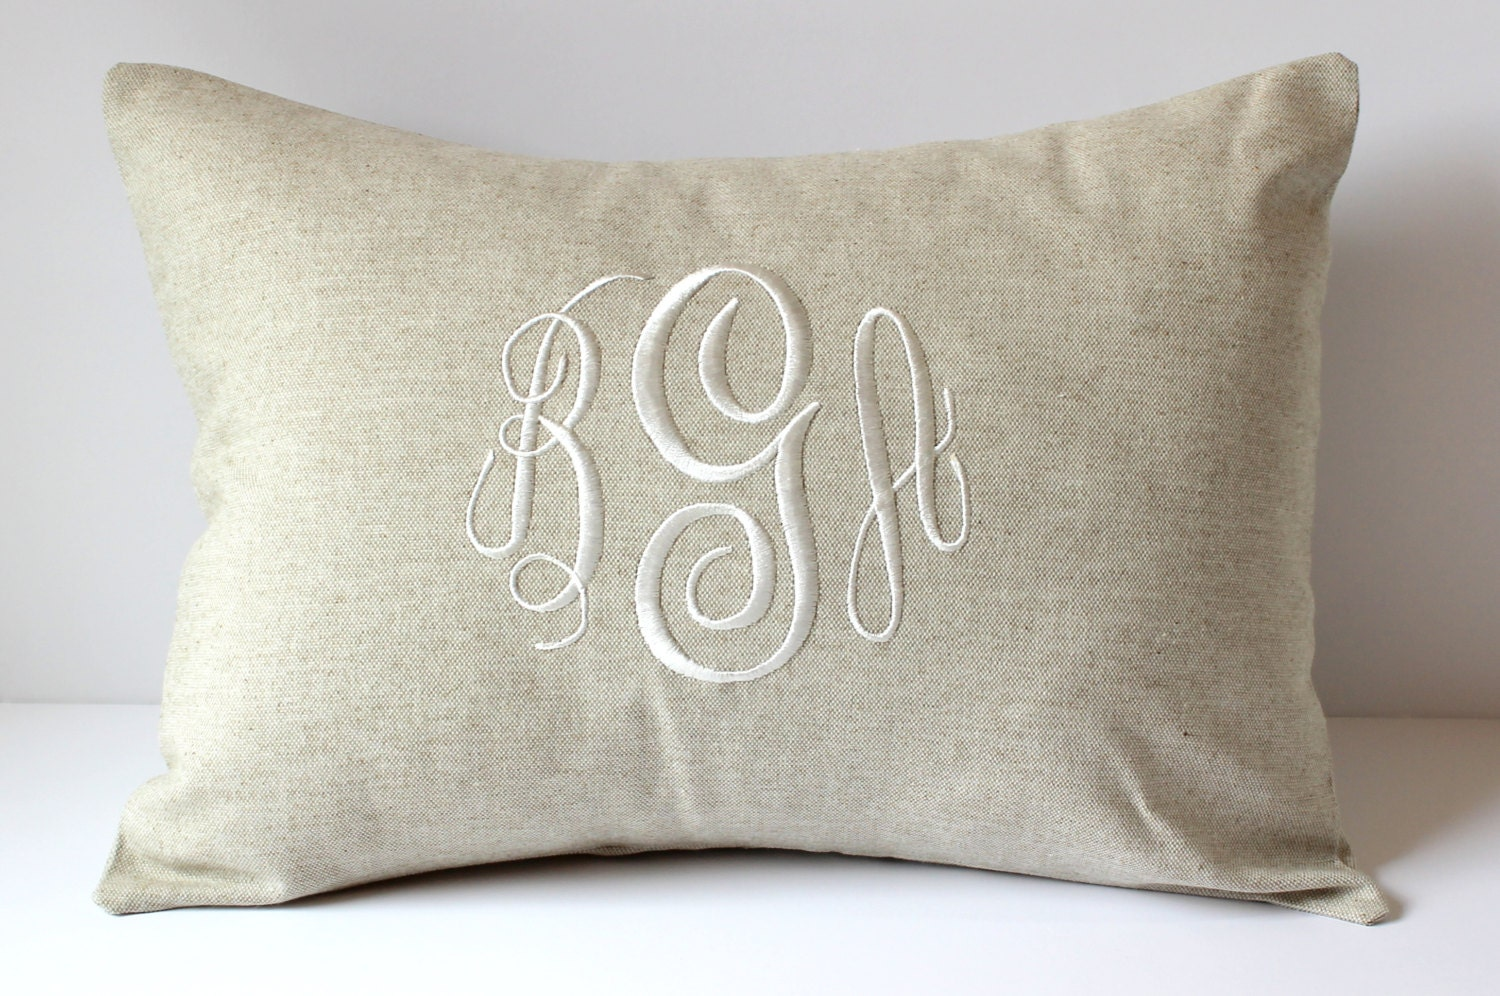 Natural Decorative Pillow : WEDDING Monogram Pillow Cover. Natural LINEN Decorative Throw